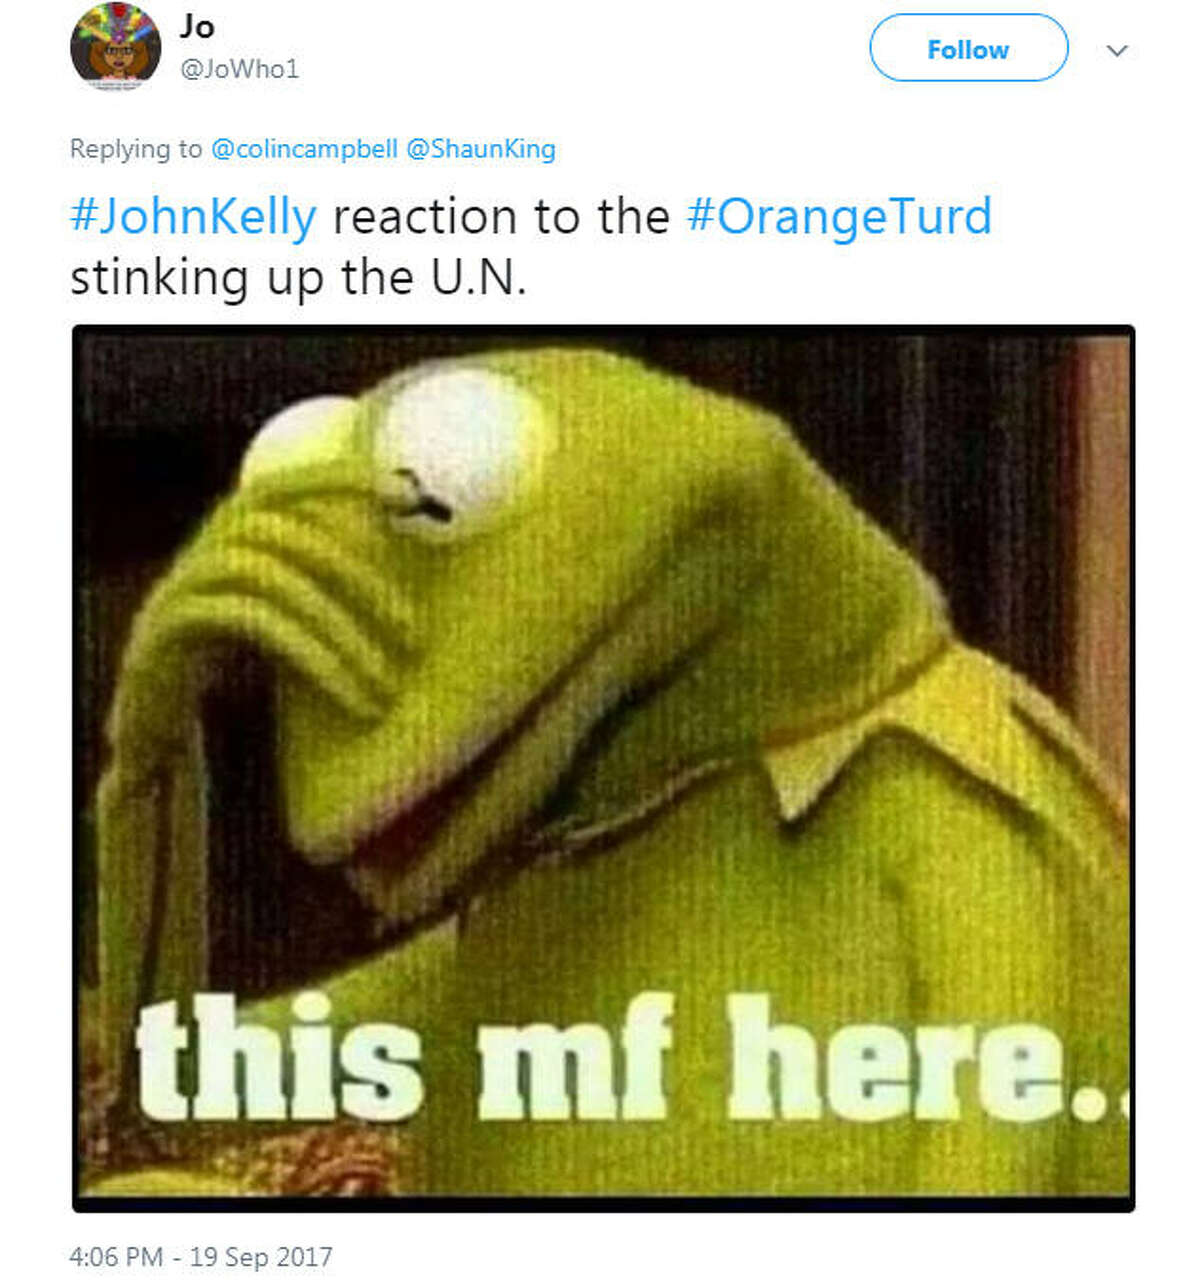 White House Chief of Staff John Kelly was spotted with his head in his hands while U.S. President Donald Trump delivered a speech to the United Nations on Sept. 19, 2017.Image source: Twitter